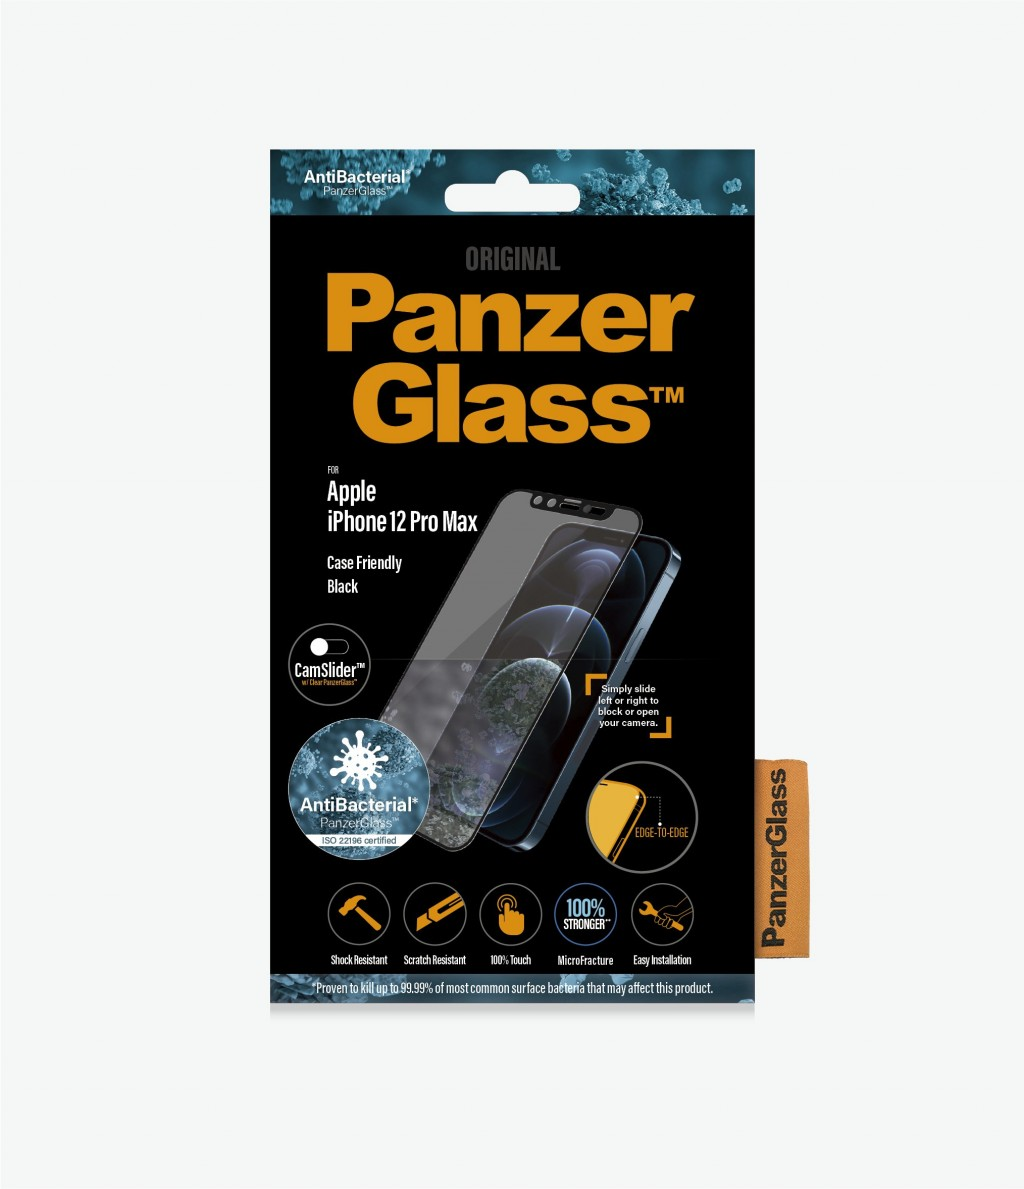 PanzerGlass Apple, iPhone 12 Pro Max, Tempered glass, Black, Case Friendly